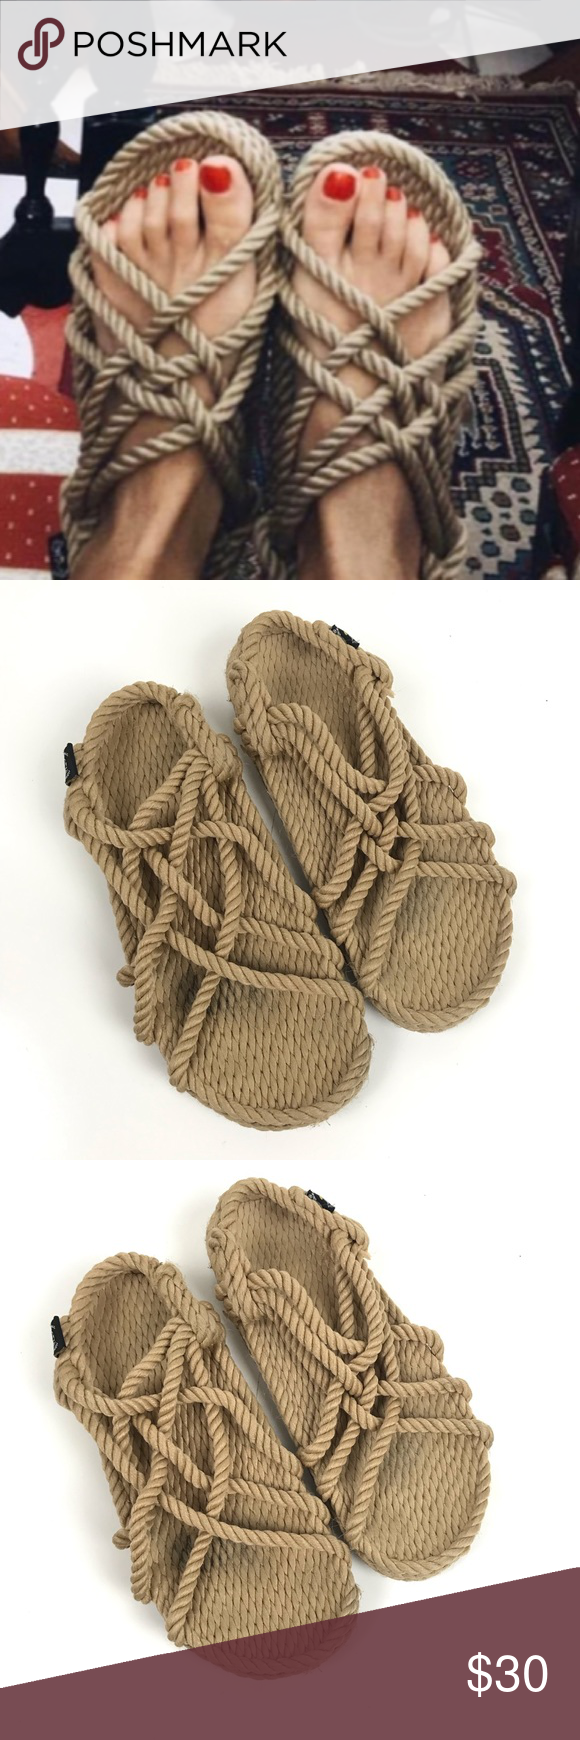 2252d237f83a2f Nomadic state of mind rope sandals nomadic state of mind rope png 580x1740 Rope  sandals jc